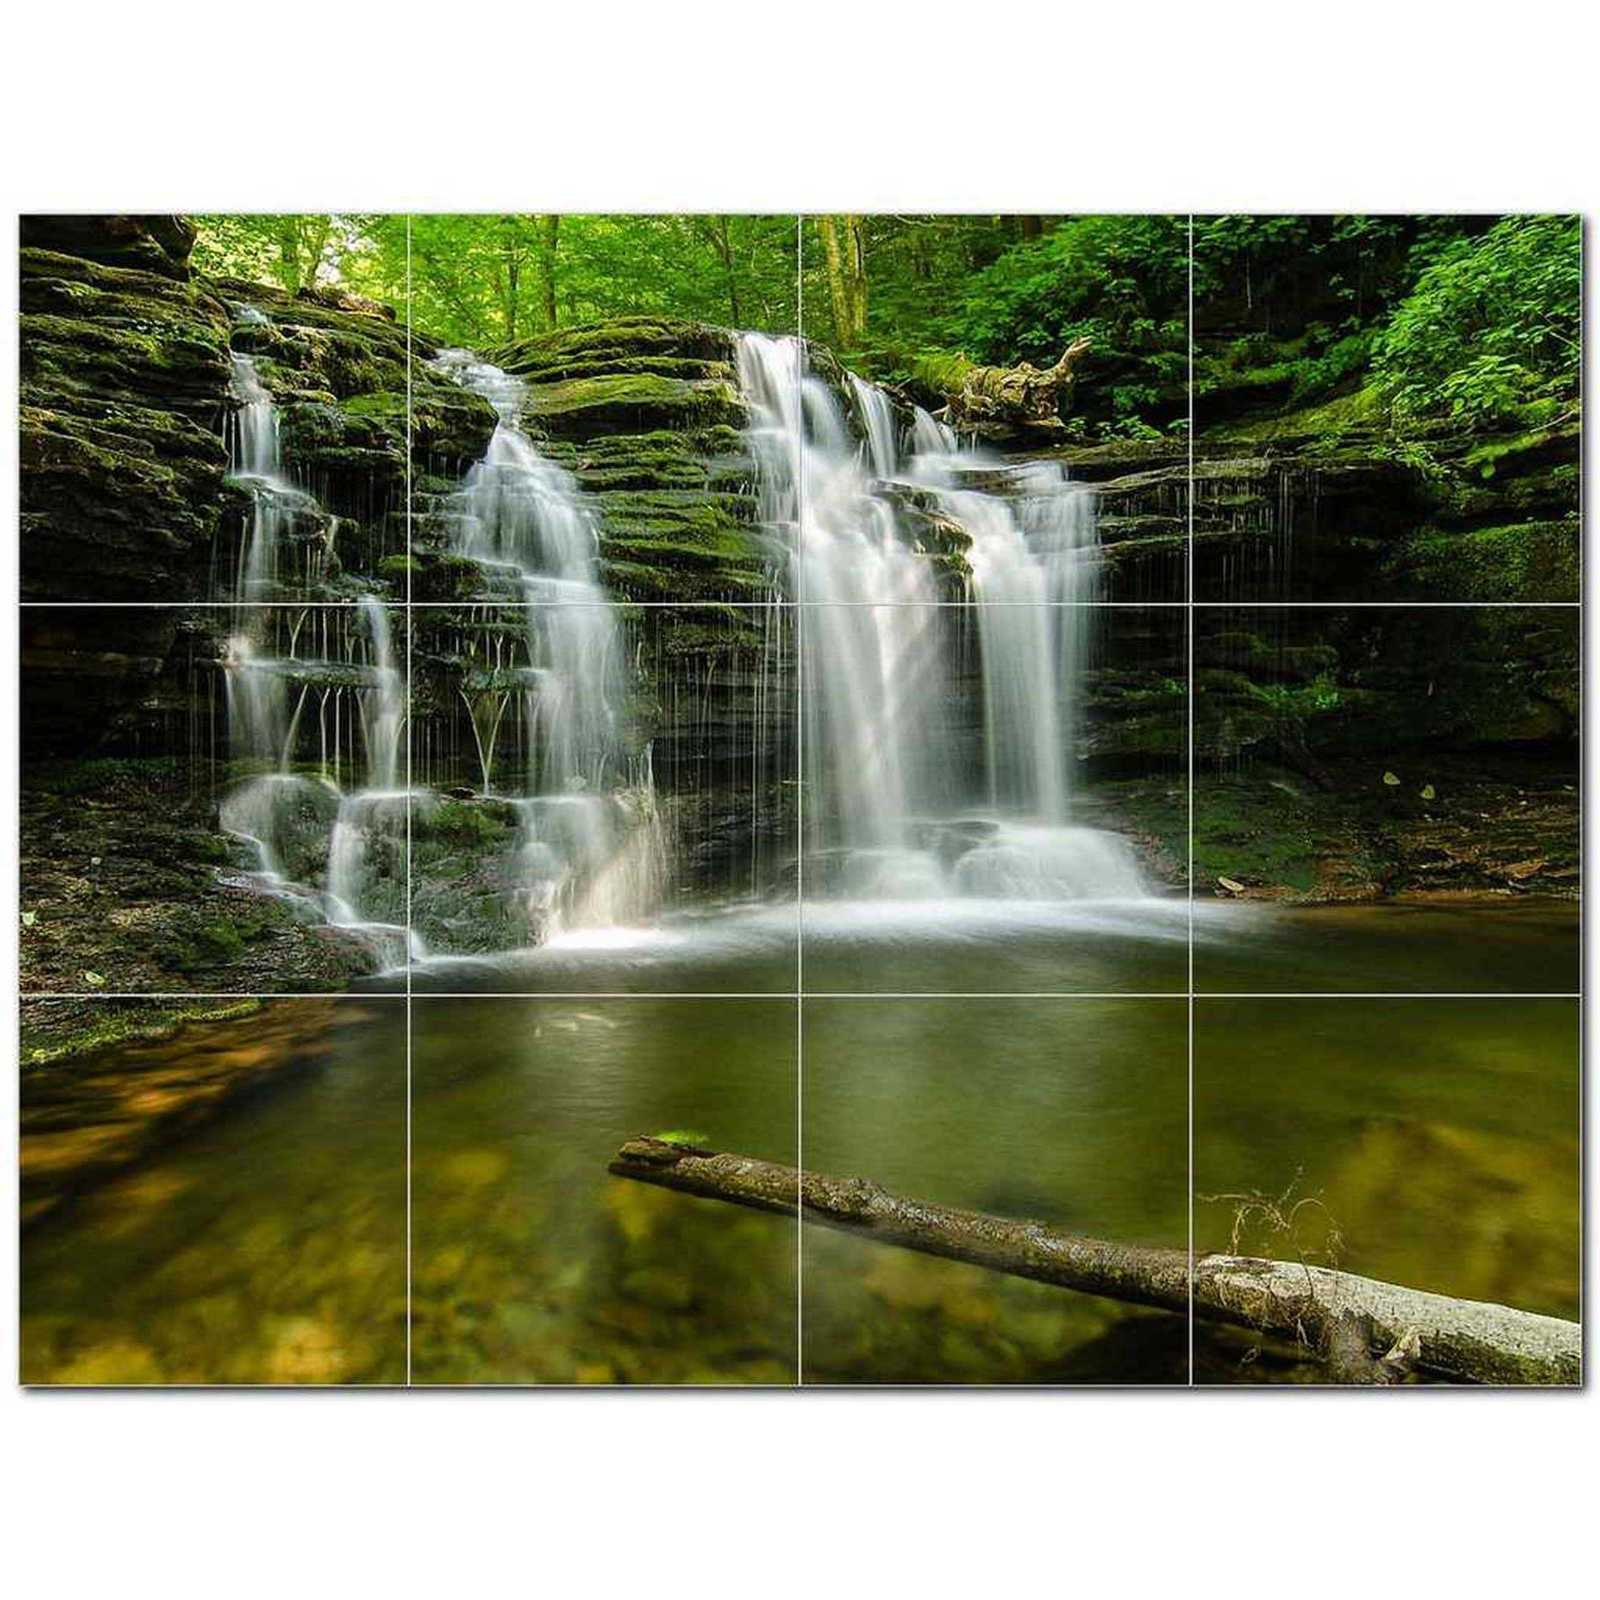 Primary image for Waterfall Photo Ceramic Tile Mural Kitchen Backsplash Bathroom Shower BAZ406138